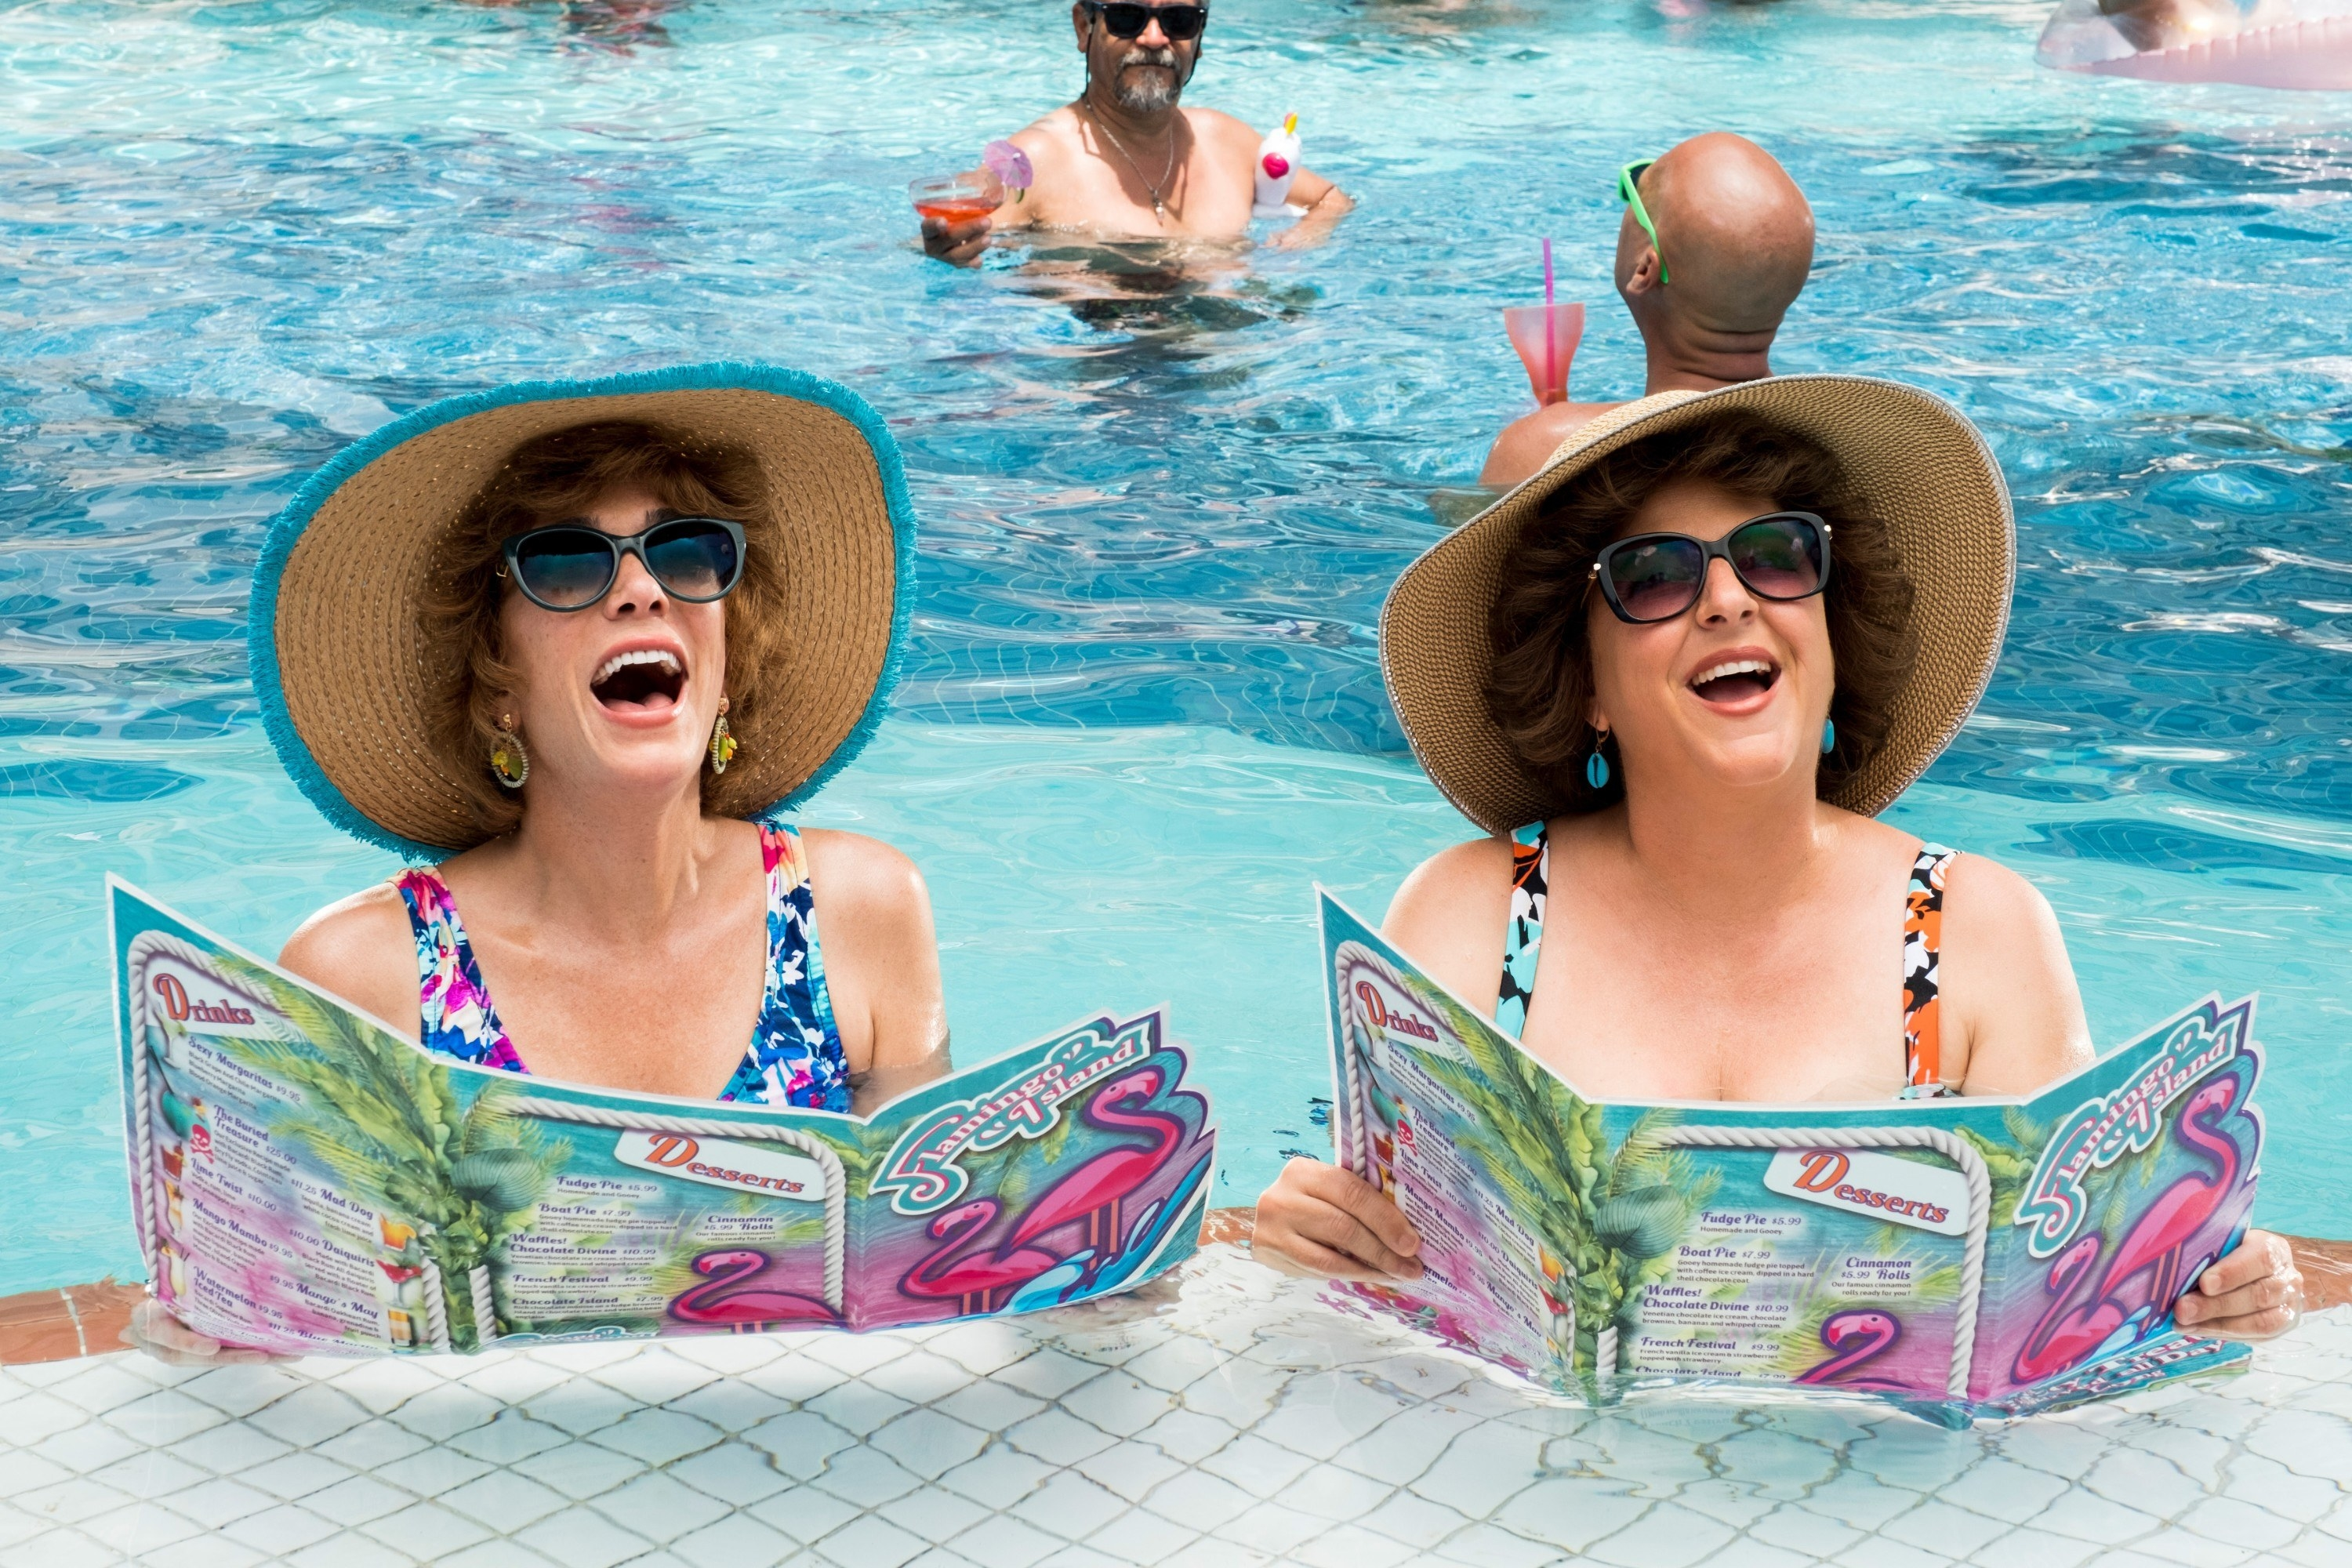 Kristen Wiig and Annie Mumolo hanging out in the pool